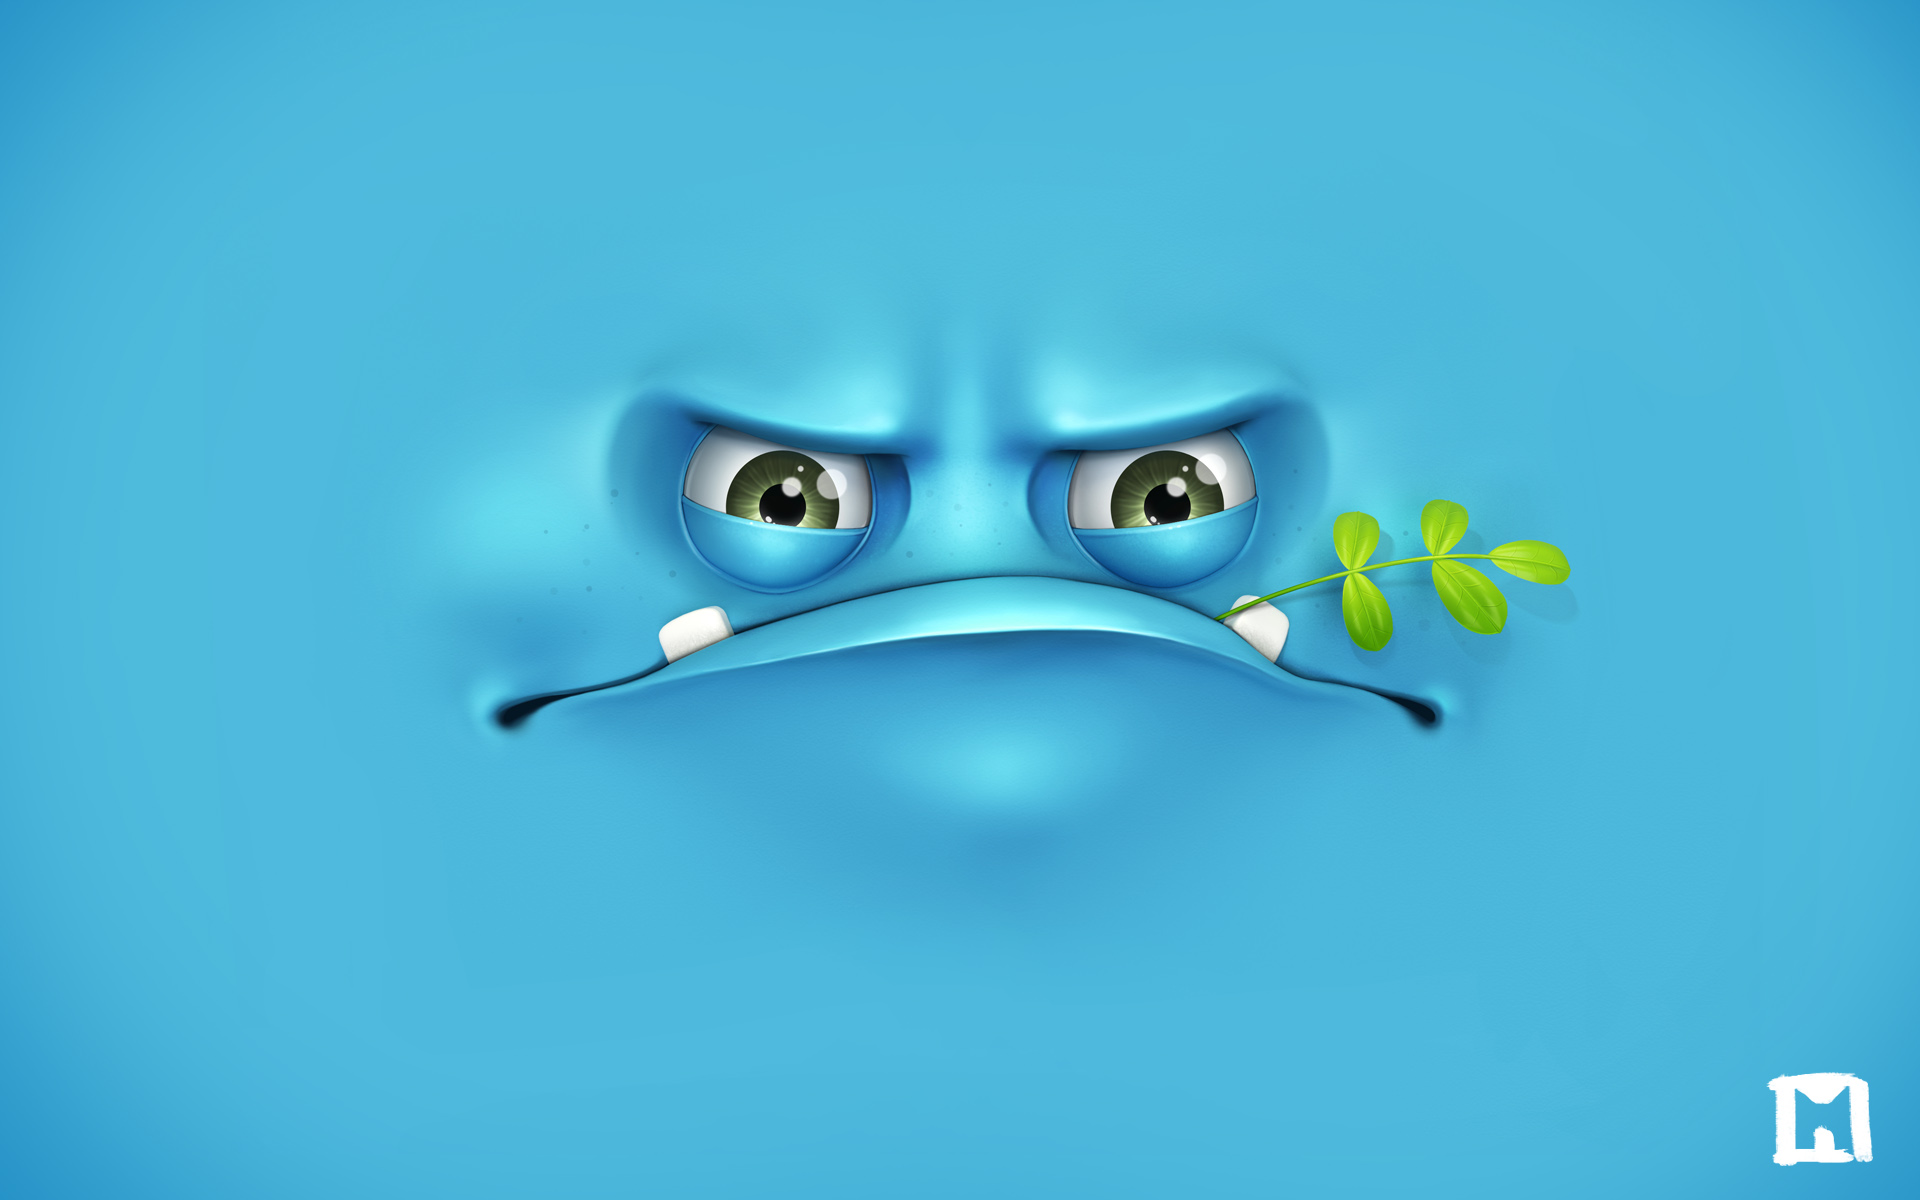 Angry Face Blue HD Wallpaper for Desktop 1920x1200